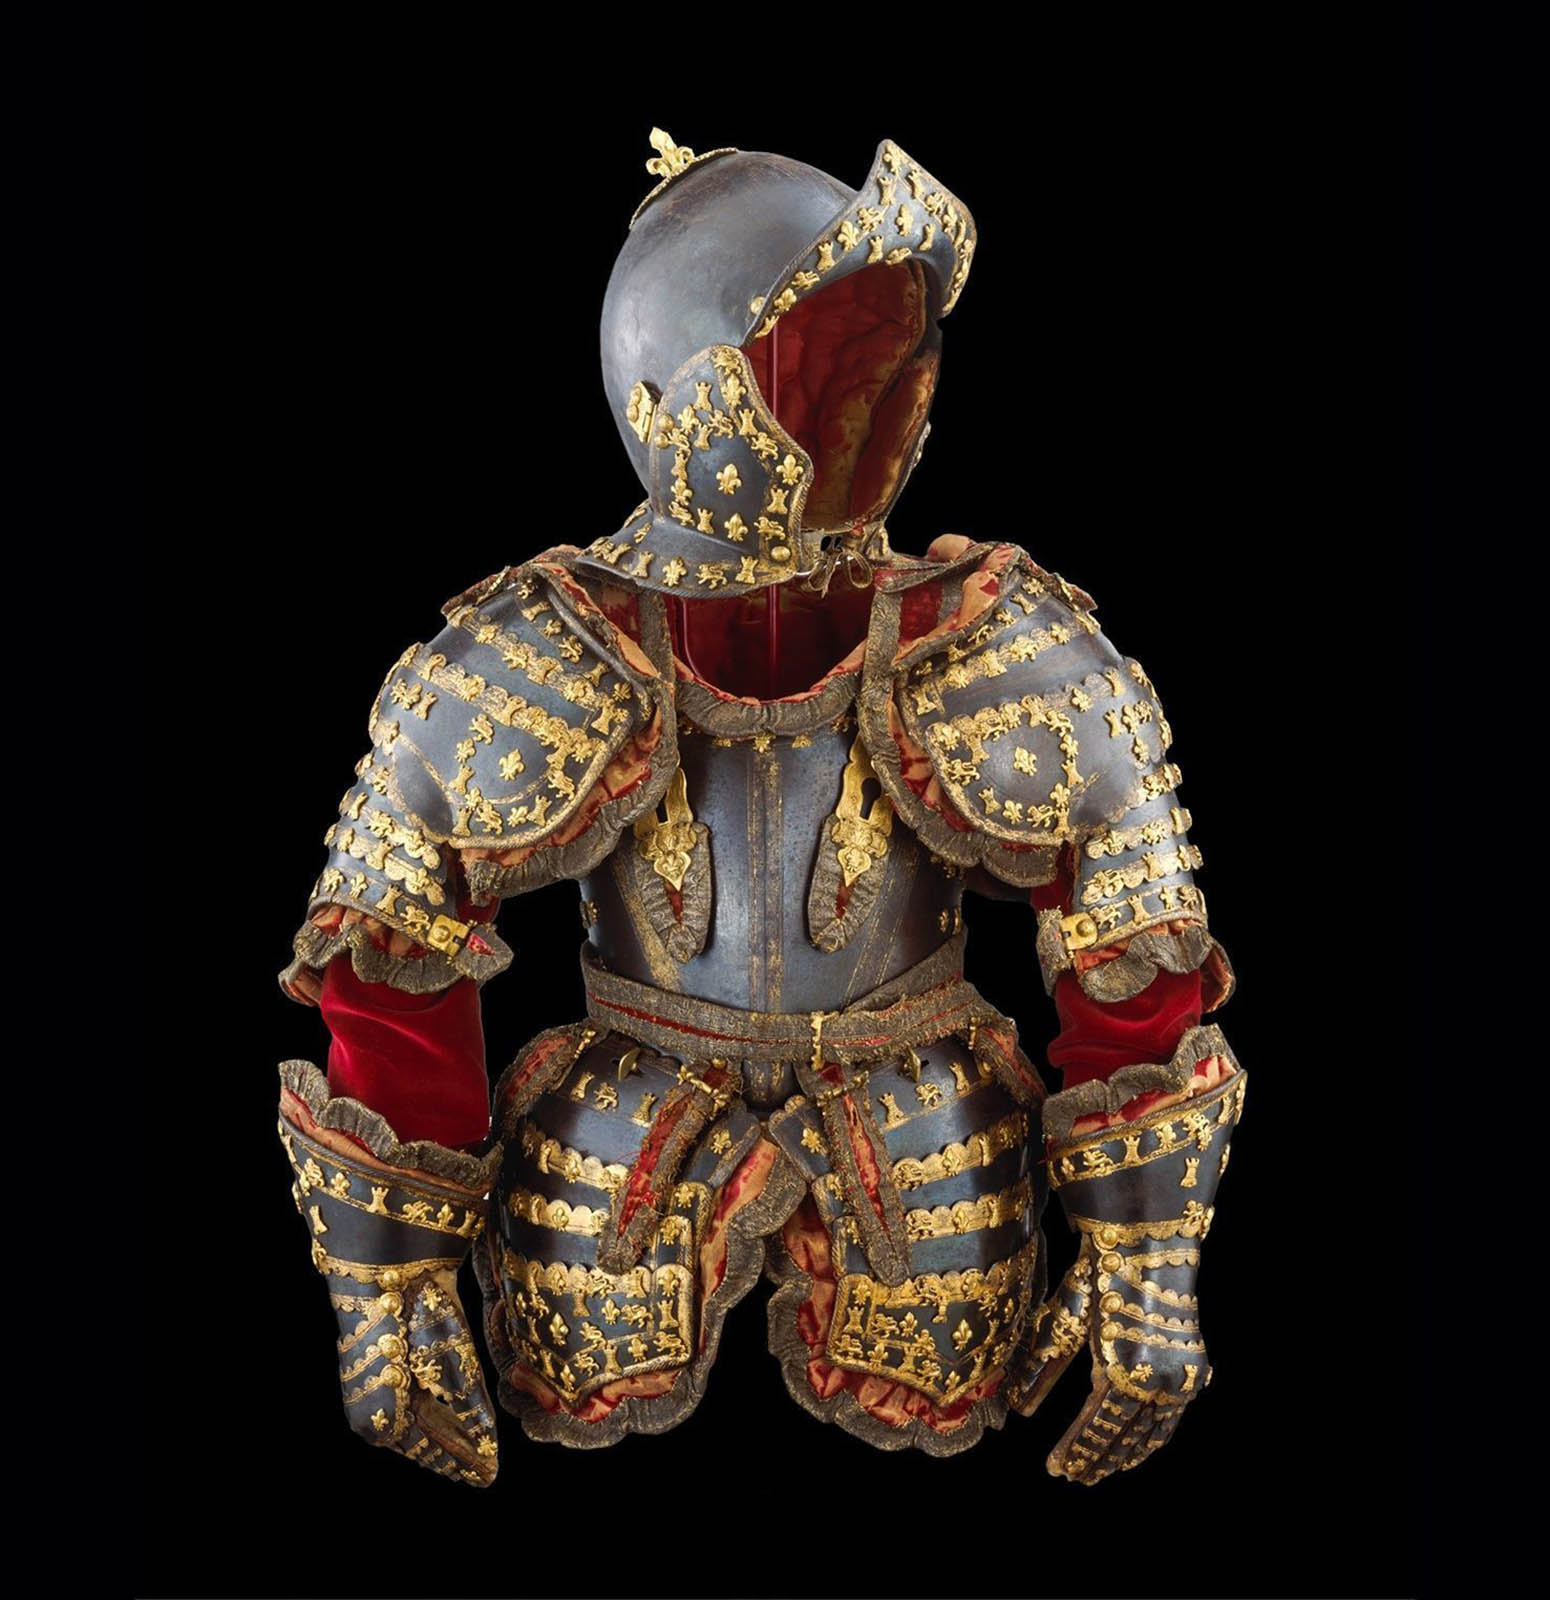 Parade_armour_of_the_5years_old_infante_Louis_Prince_of_Asturias_last_royal_armour_that_was_made_in_Europe_Circa_1712_year